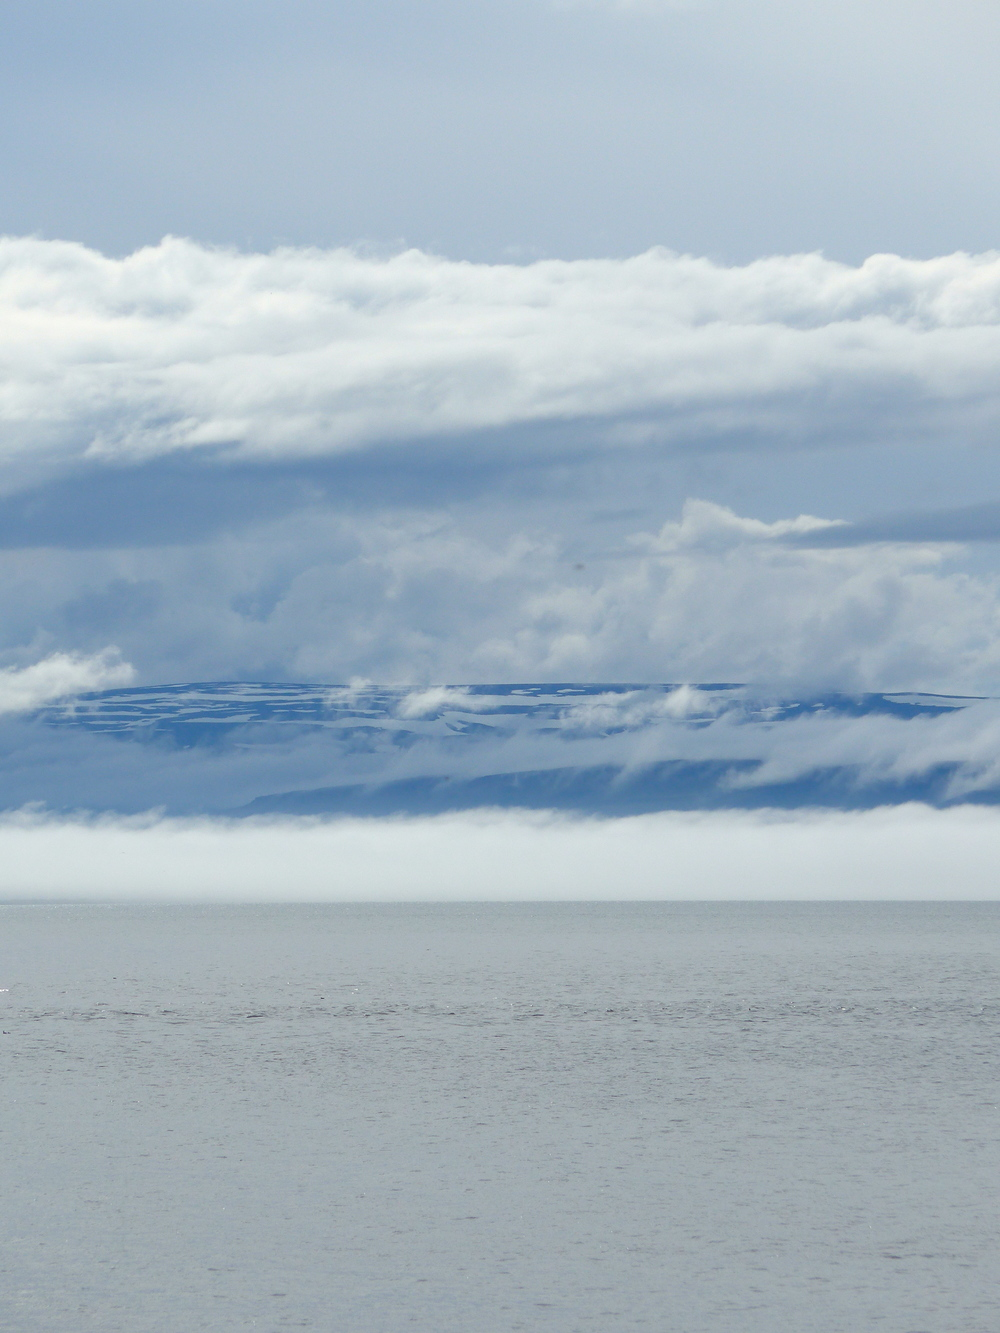 The view of the mountains across the fjord is spectacular.